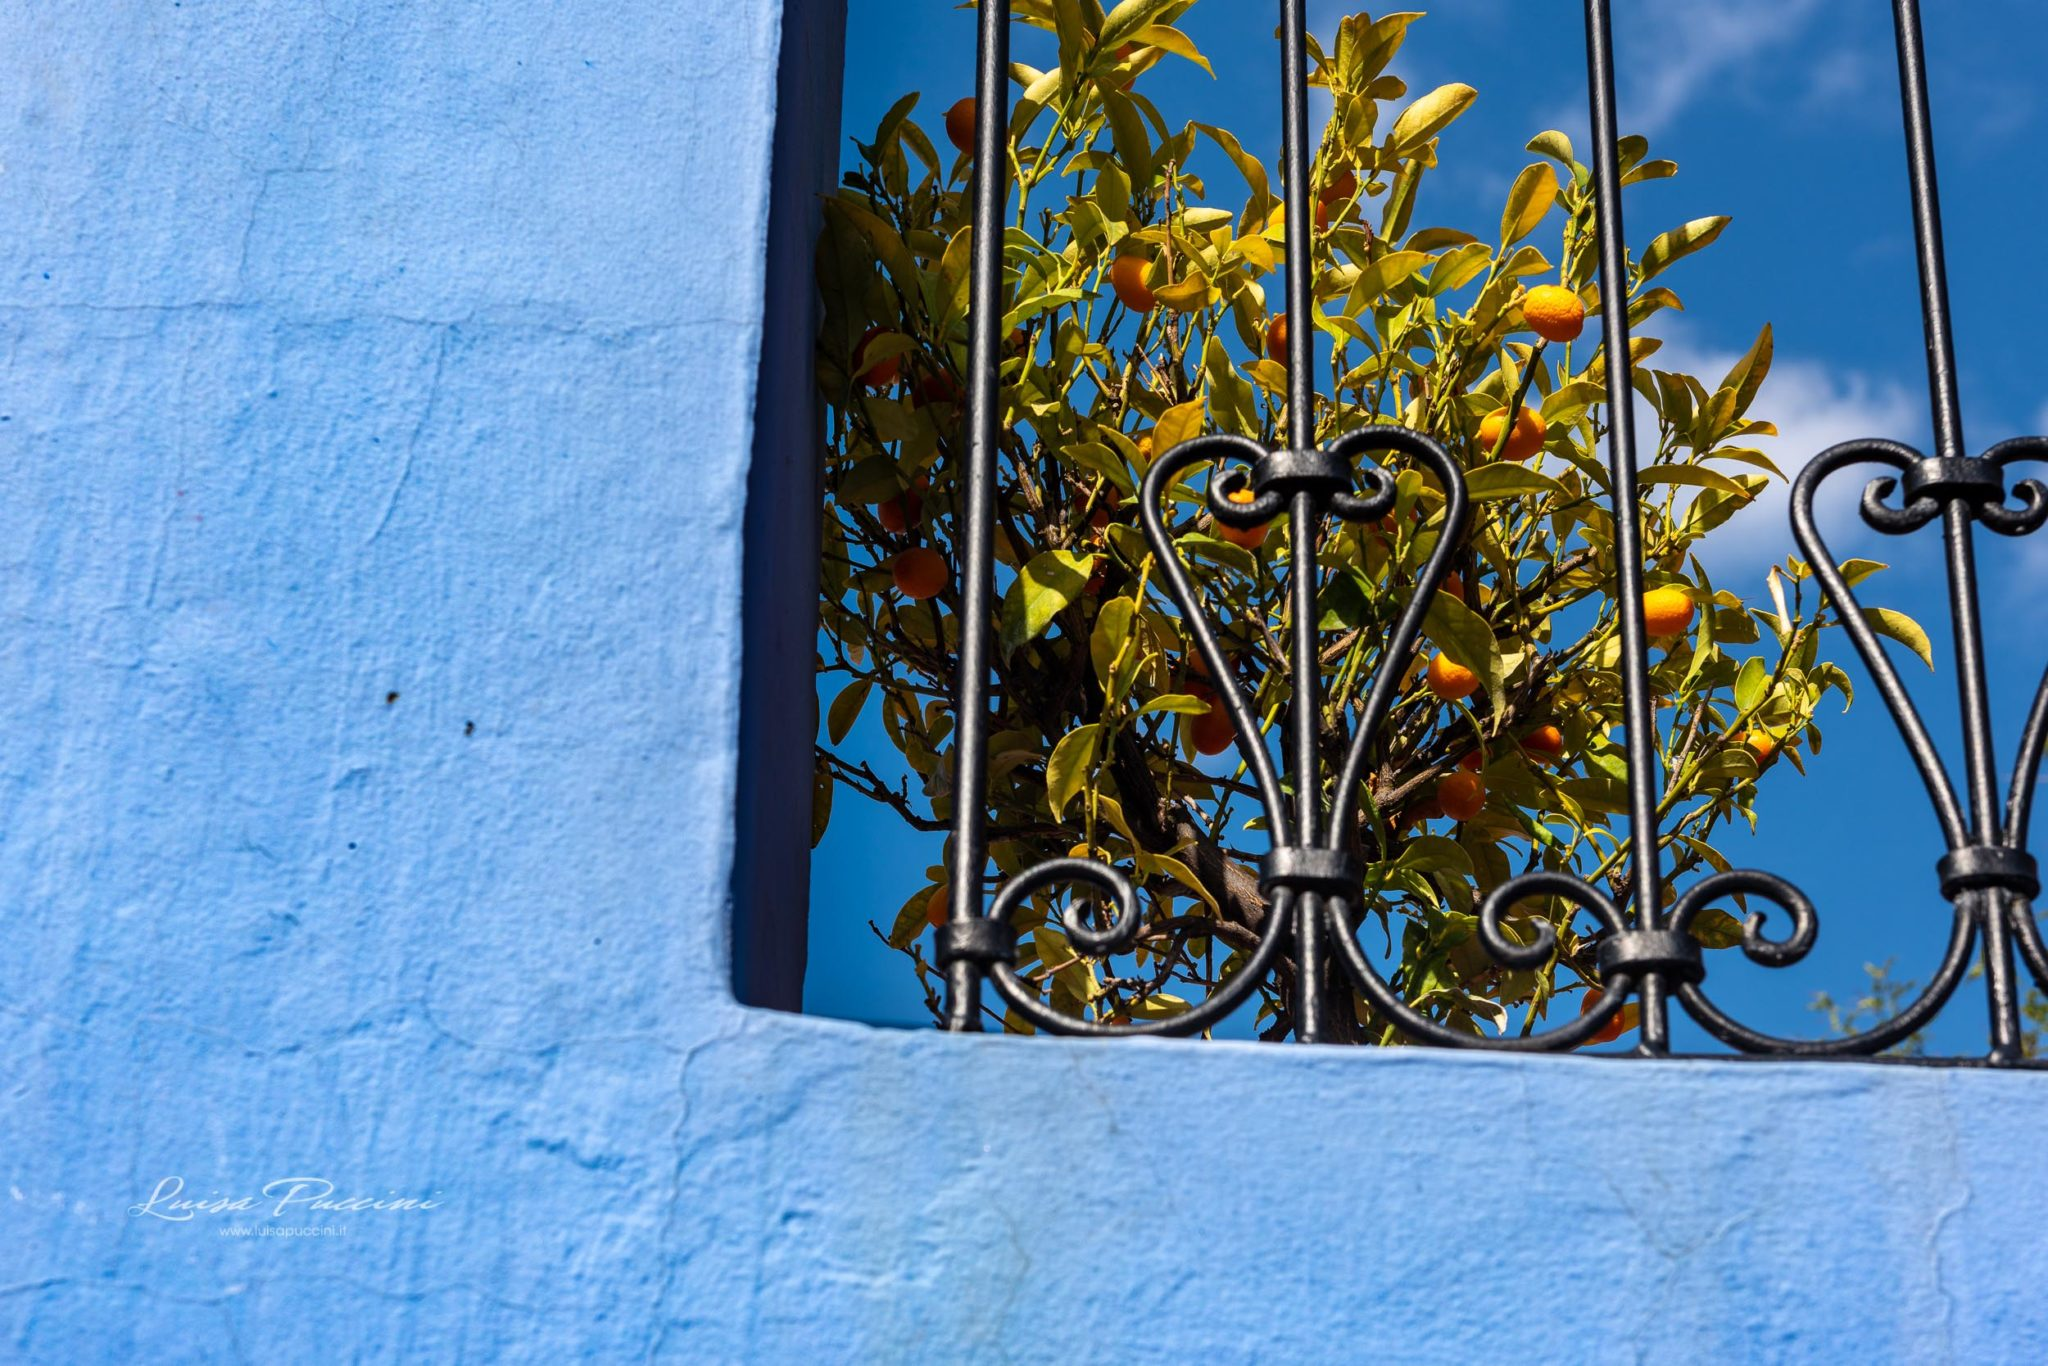 Luisa Puccini, Chefchaouen, blue, travel